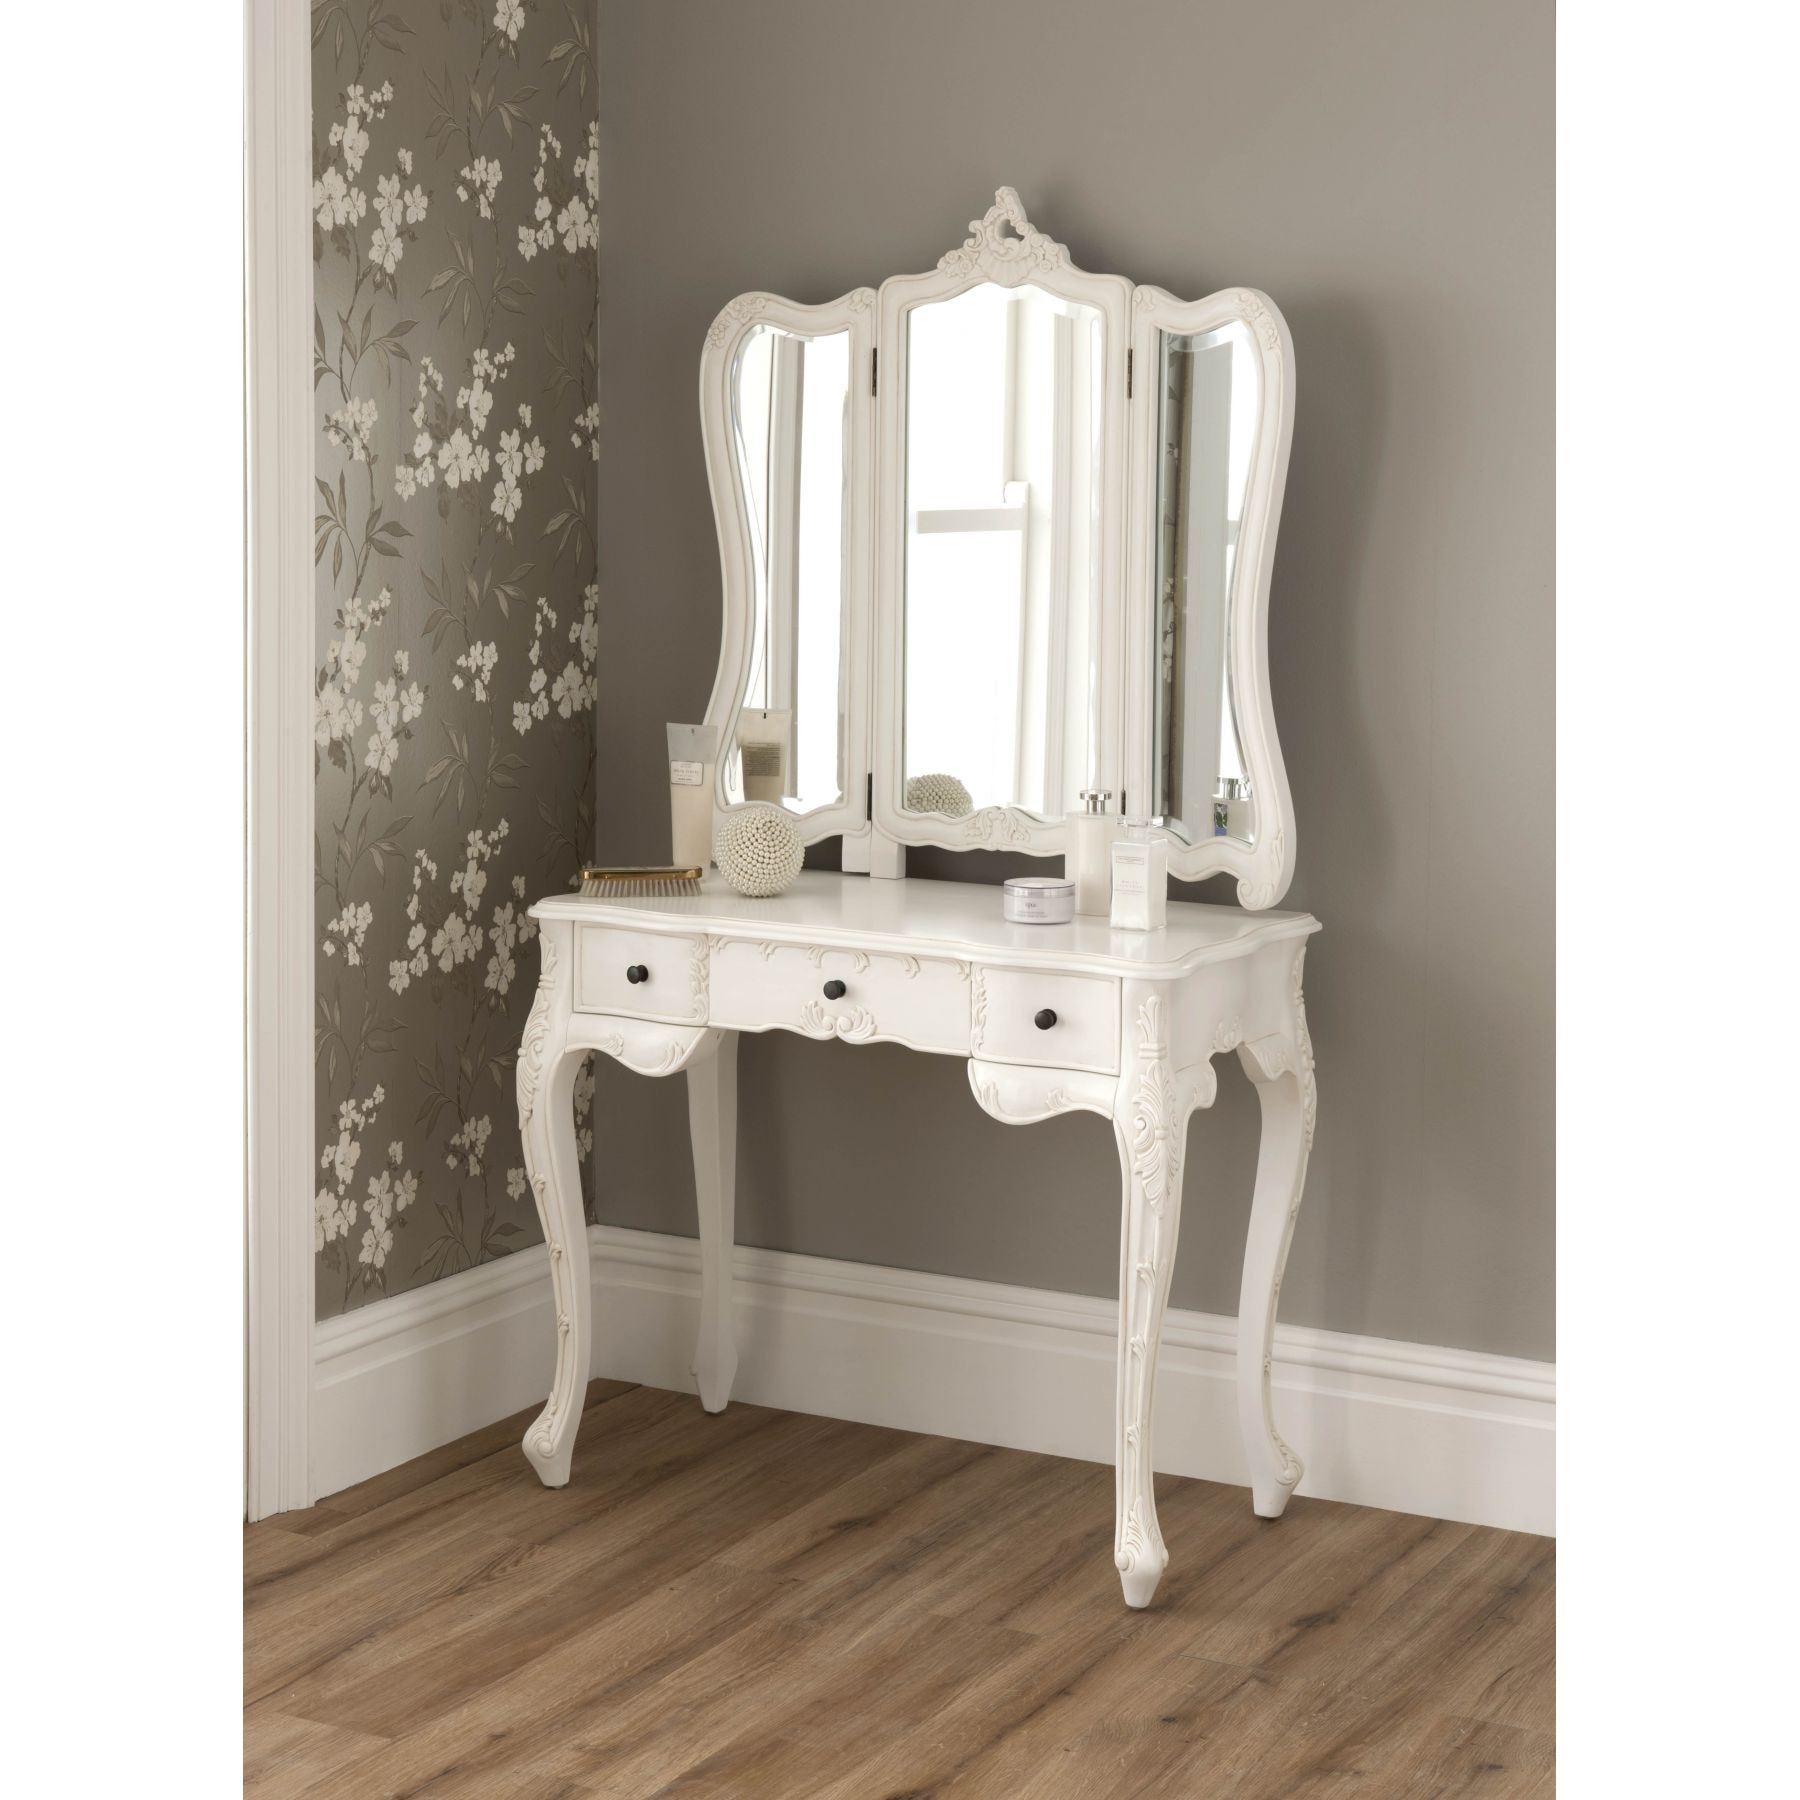 Antique mirrored dressing table - La Rochelle Antique French Dressing Table Set Size Small